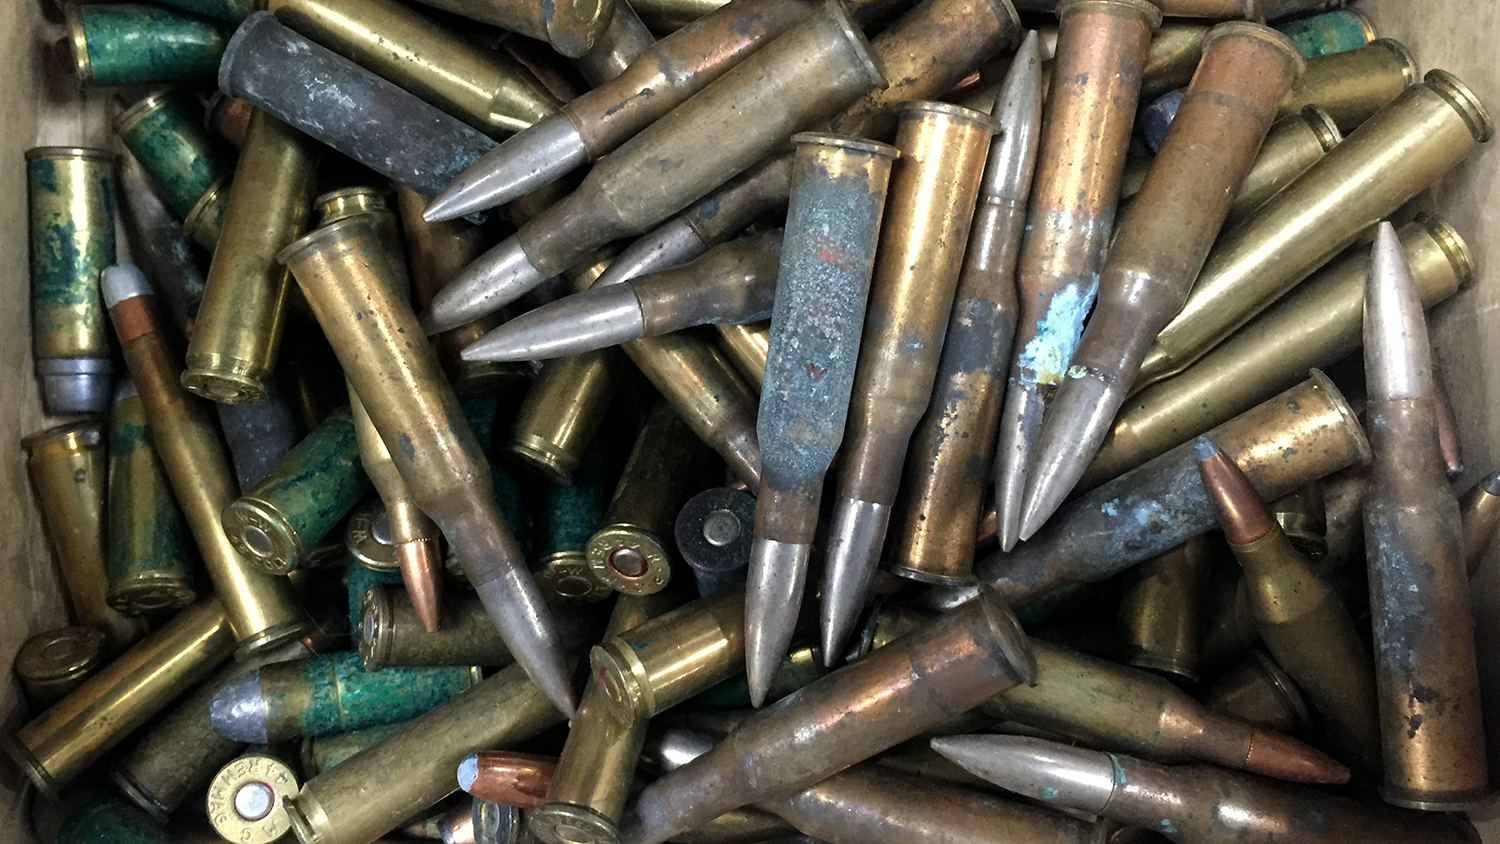 nra blog how do you get rid of bad ammunition